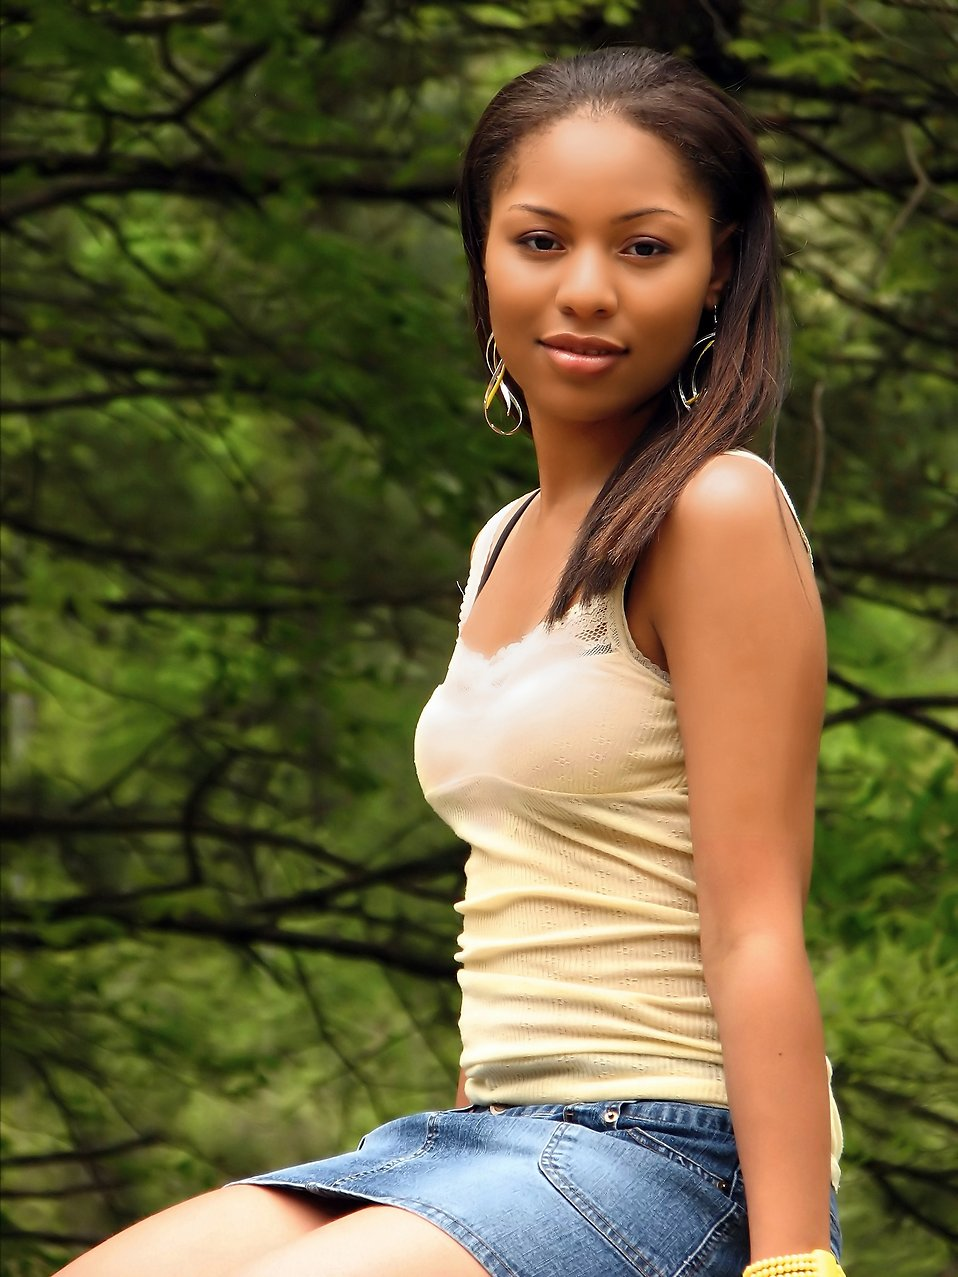 A beautiful African American teen girl posing in the woods : Free Stock Photo